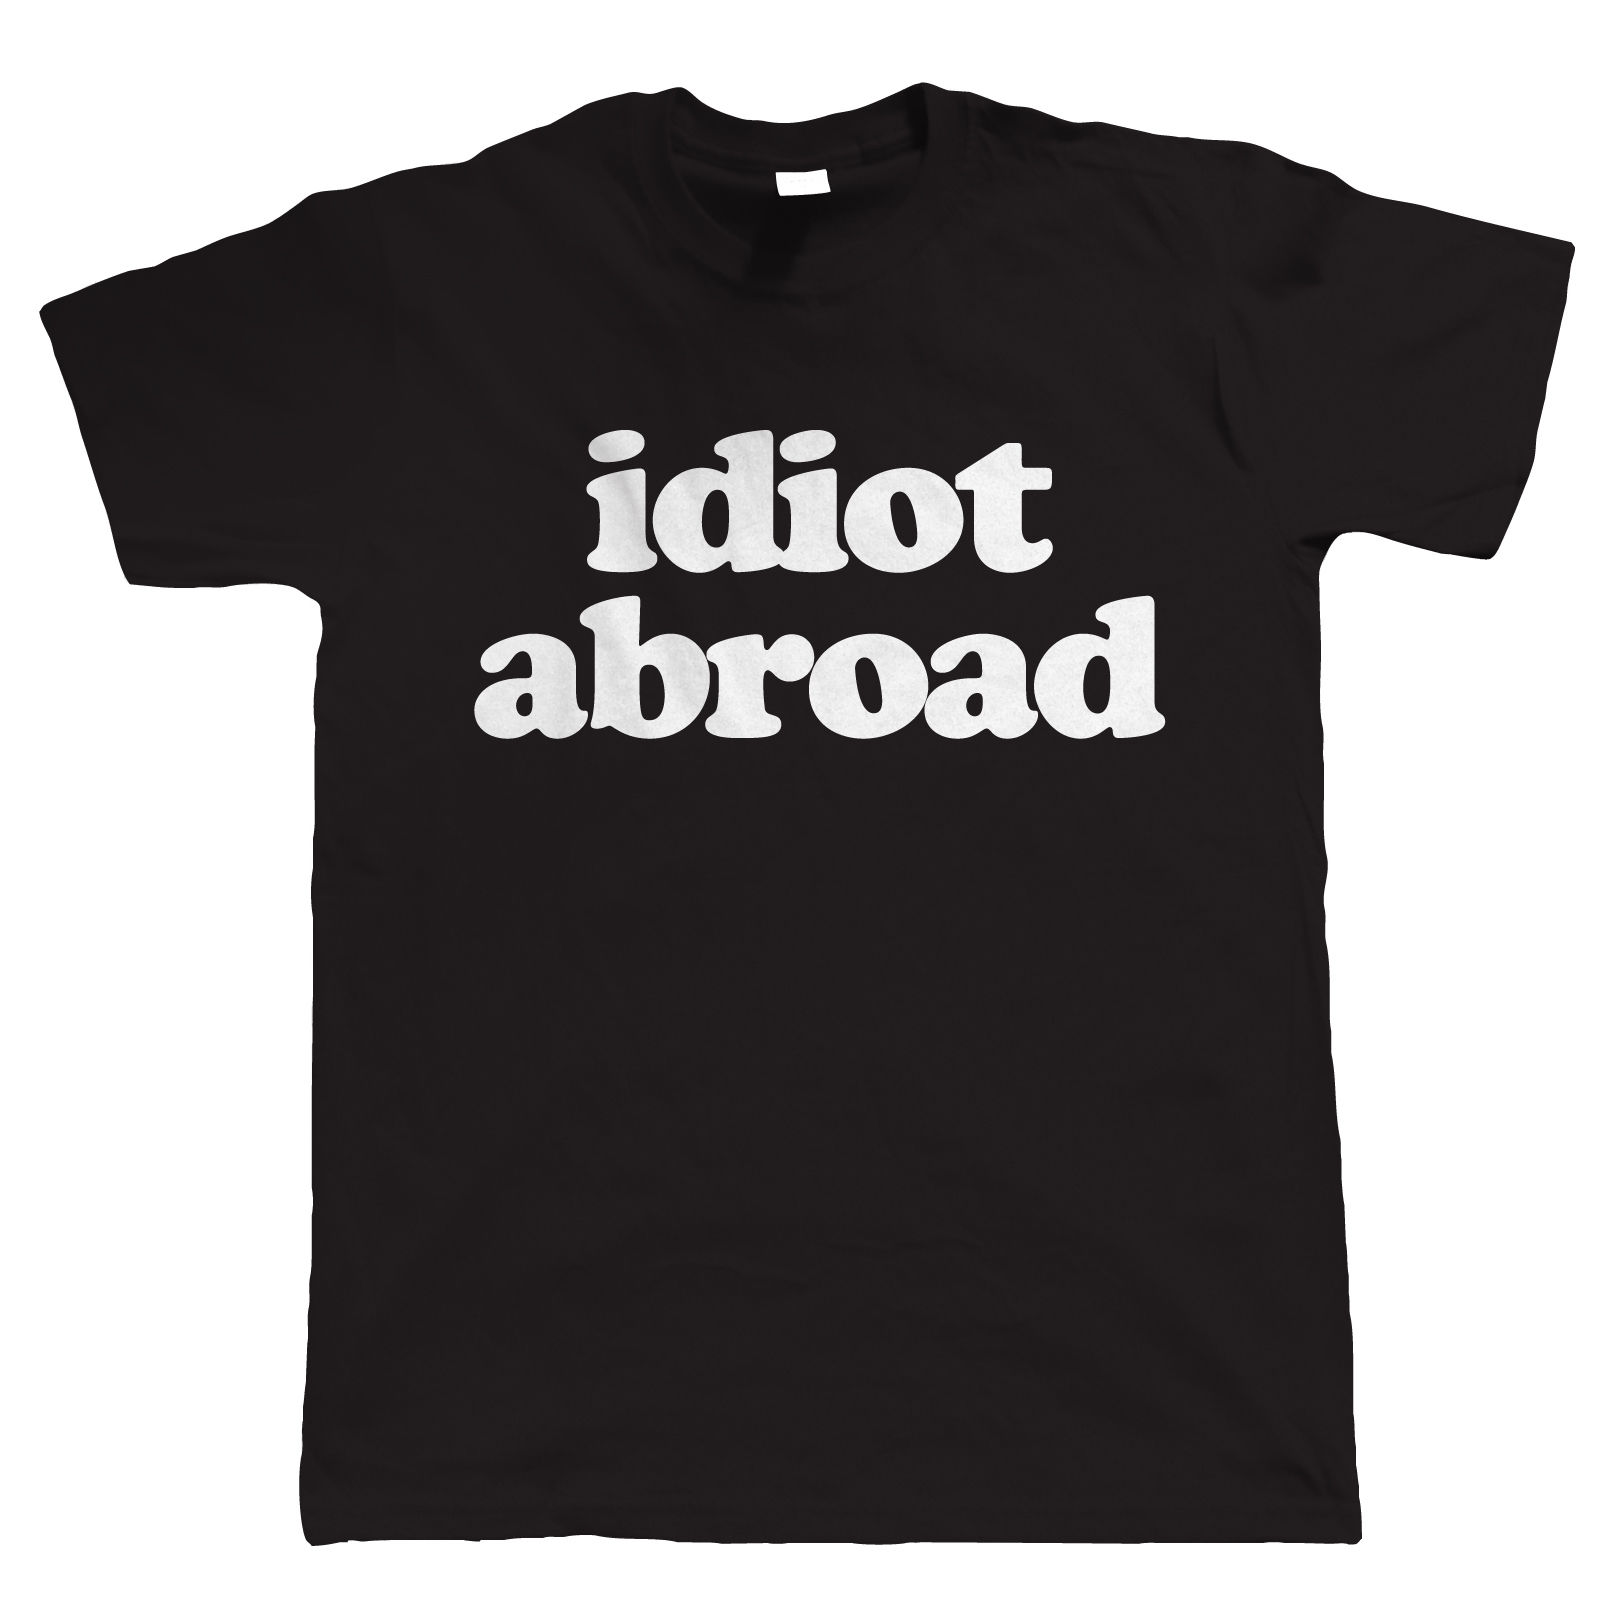 Idiot Abroad, Mens Funny Holiday T Shirt  Men 2018 New T-Shirt Men Funny Tee Shirts Short Sleeve Pop Cotton Man Tee